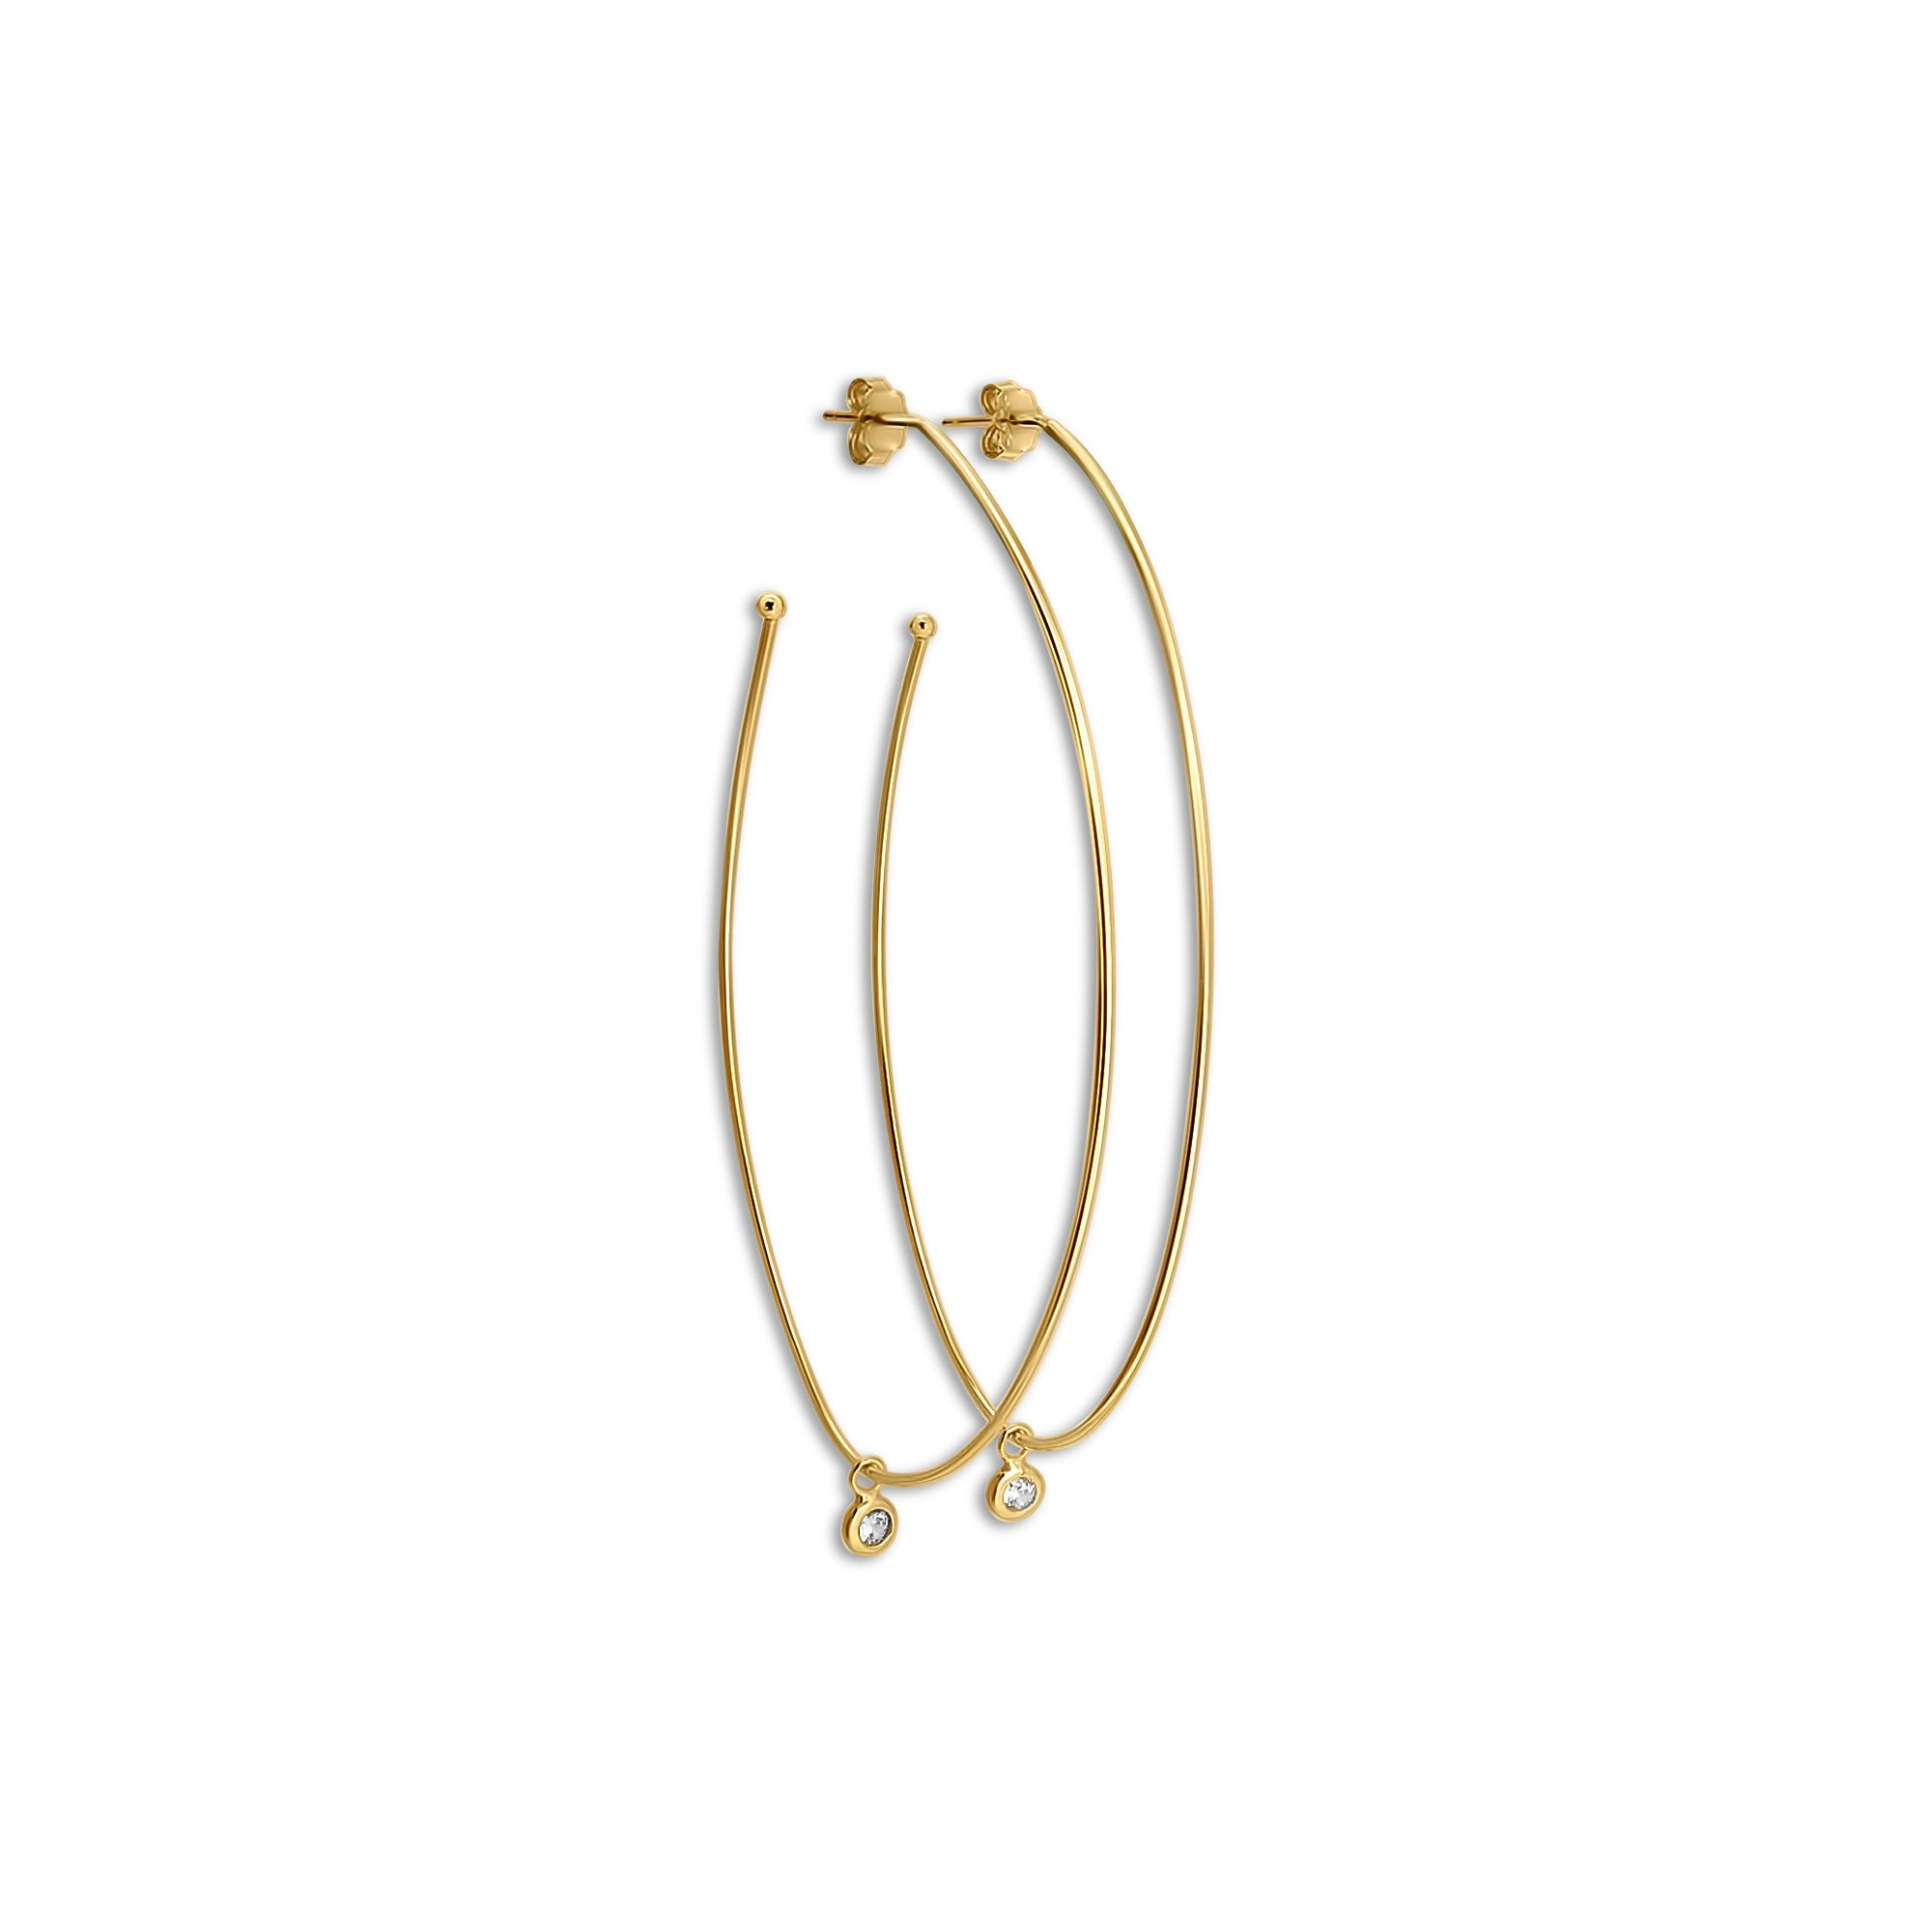 Drippn' Gold Wire Oval Hoops